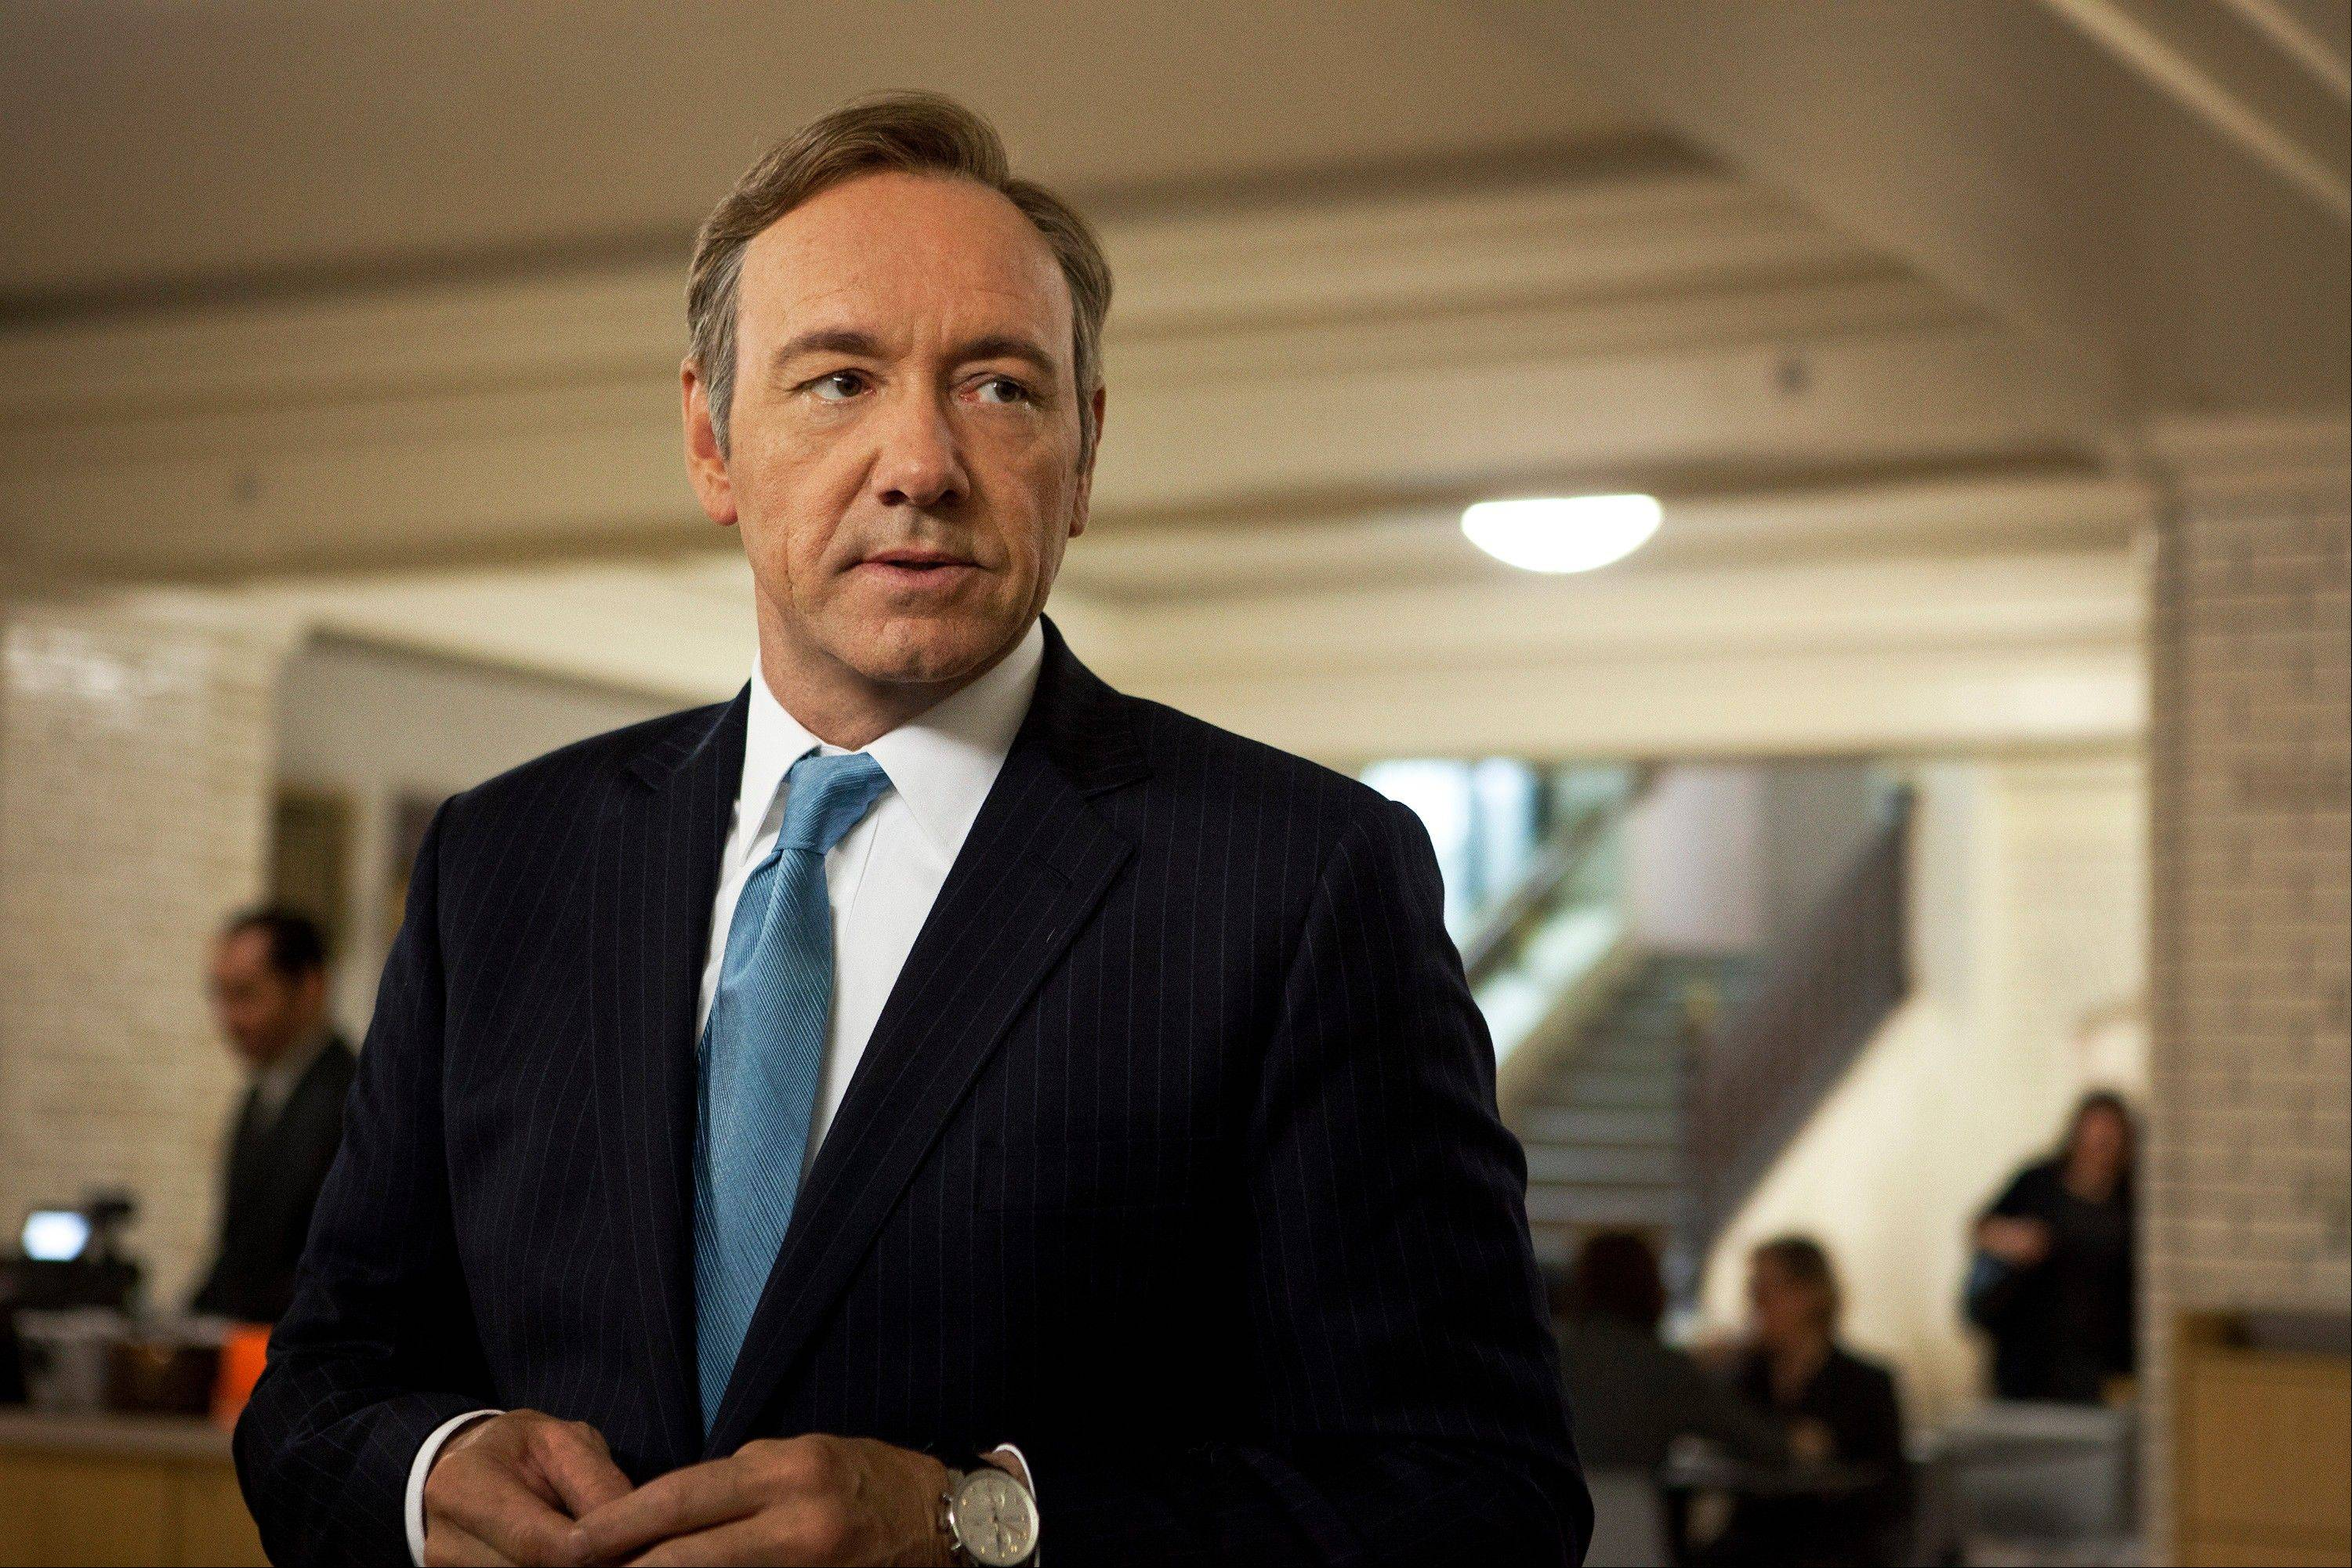 Kevin Spacey plays U.S. congressman Frank Underwood in the Netflix original series, �House of Cards.� The political intrigue saga received a best drama series nomination Thursday. It�s the first top Emmy nod for a program delivered online, not on TV.